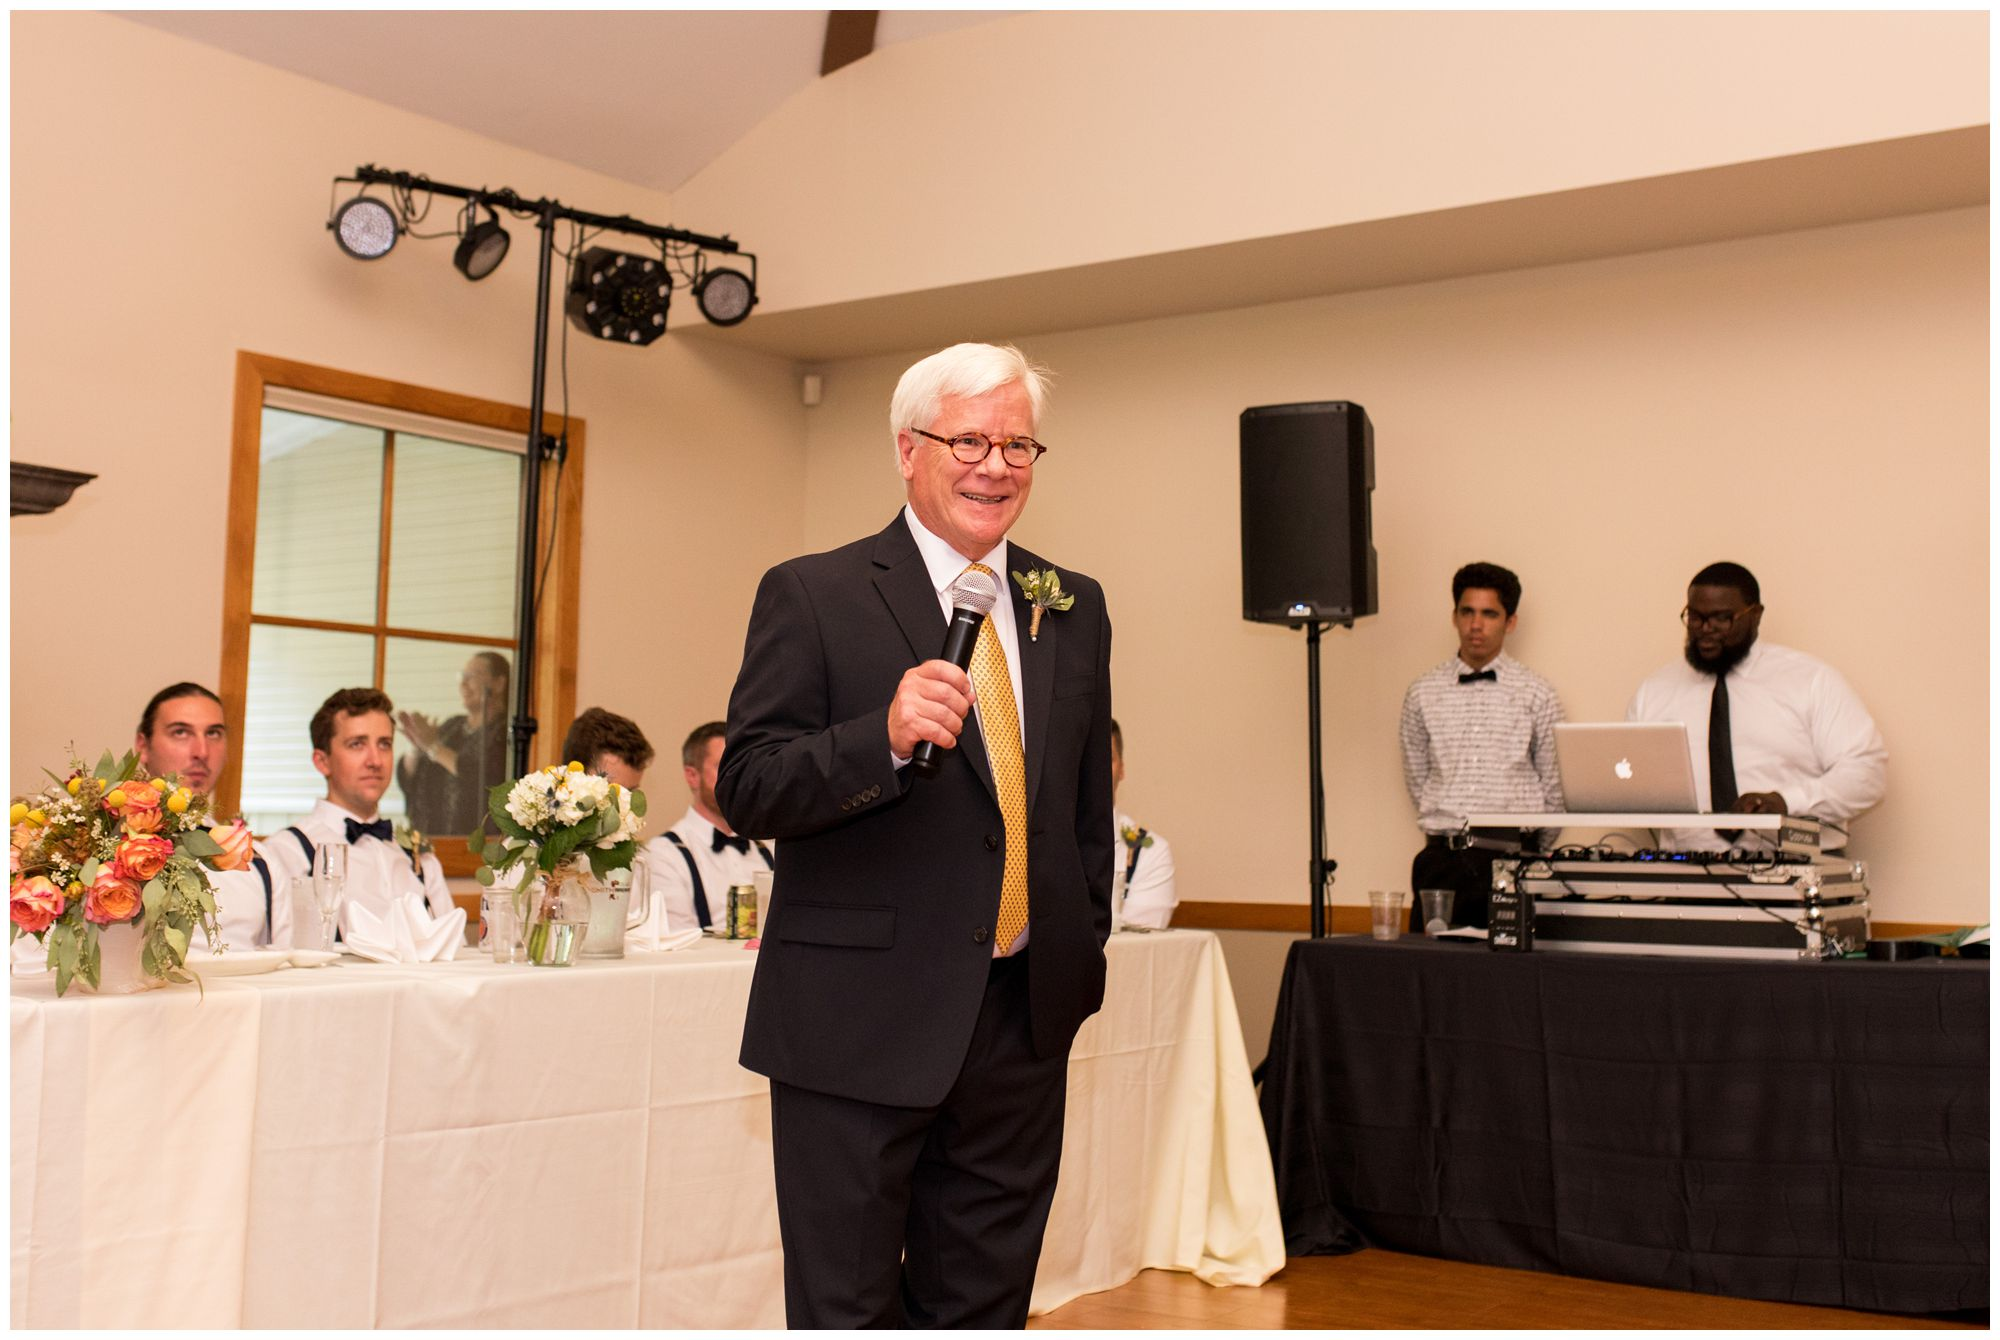 father of the bride welcome speech during wedding reception at Forest Park Inn